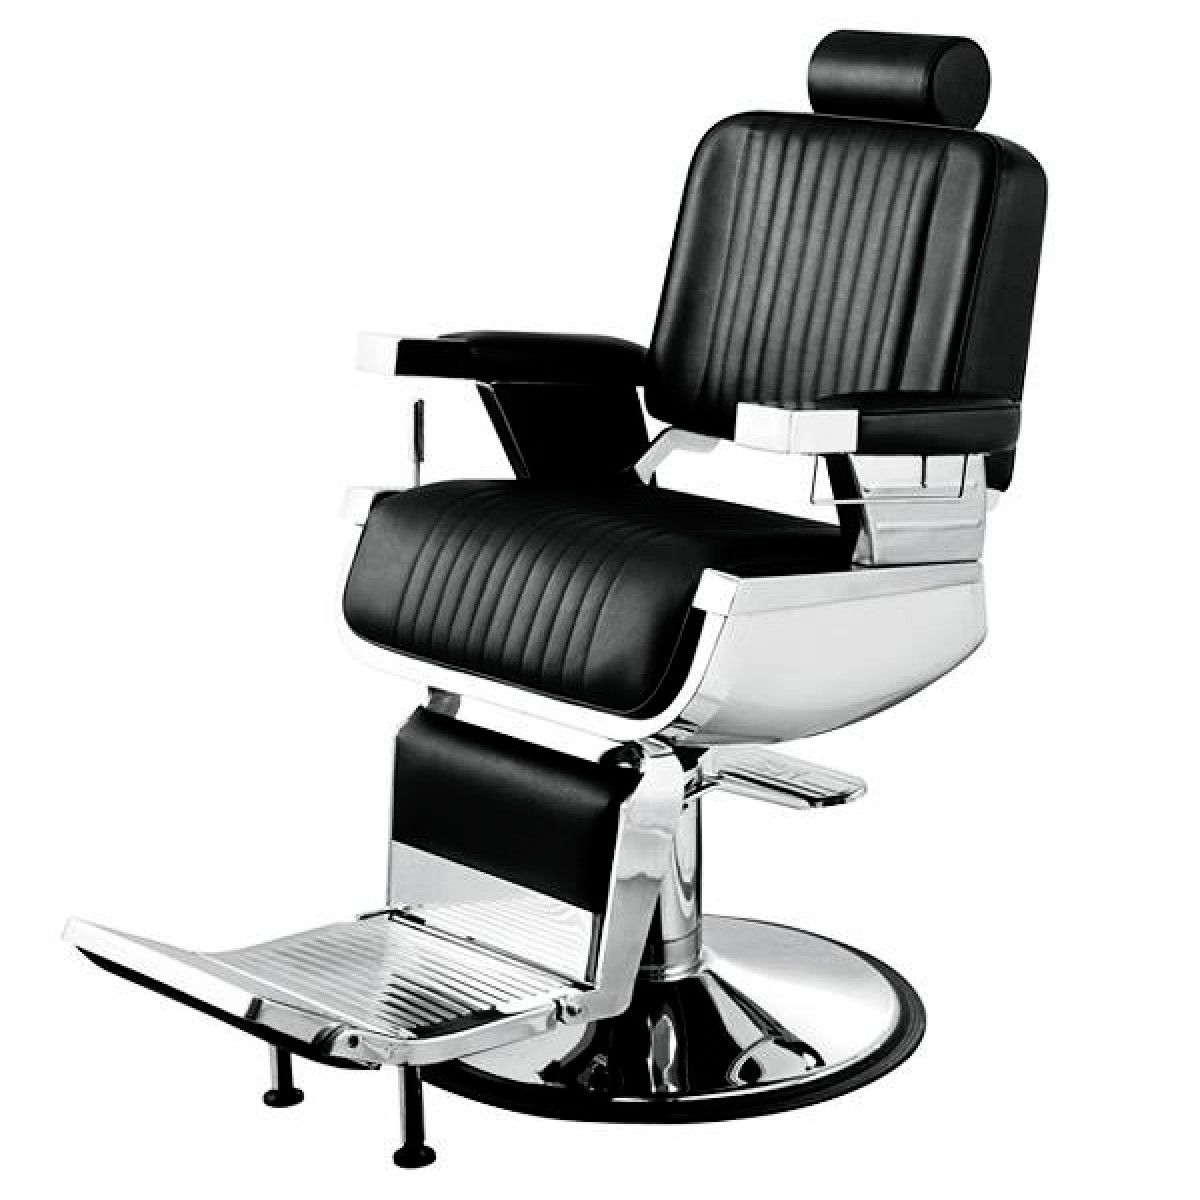 "constantine"" barber chair - barber chairs & barber shop chairs"